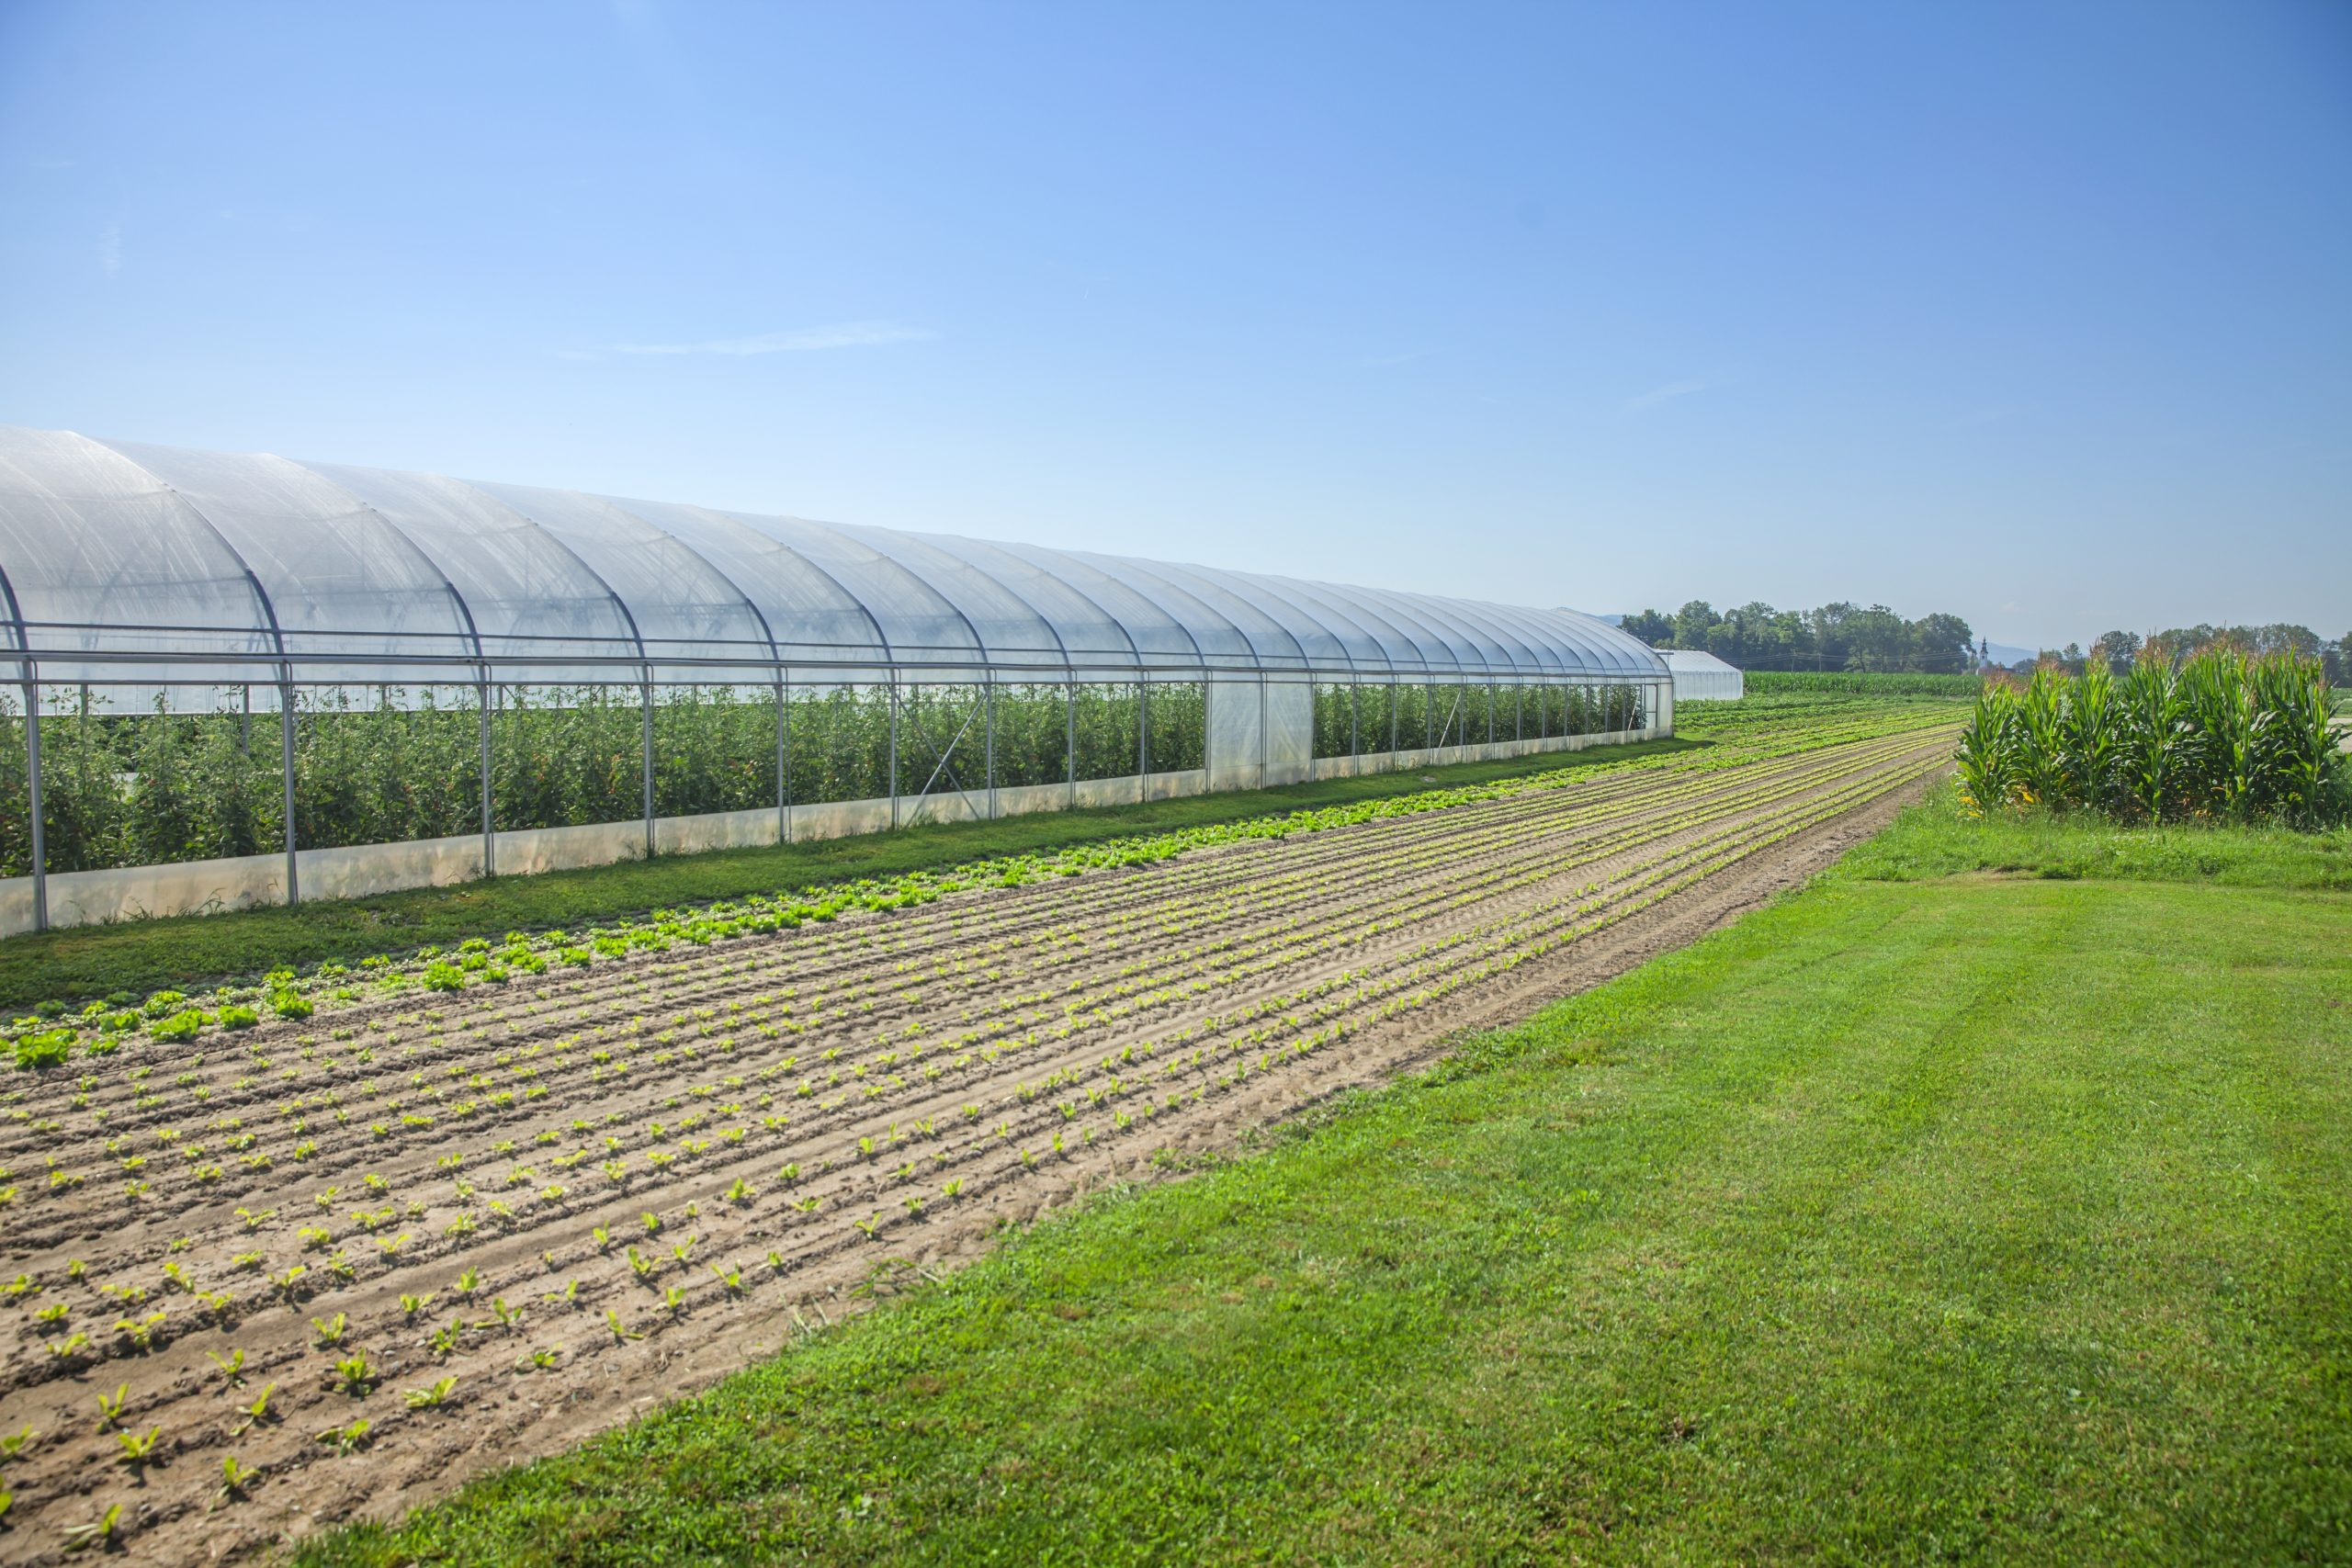 We can see fields and a greenhouse. It`s a beautiful summer day.